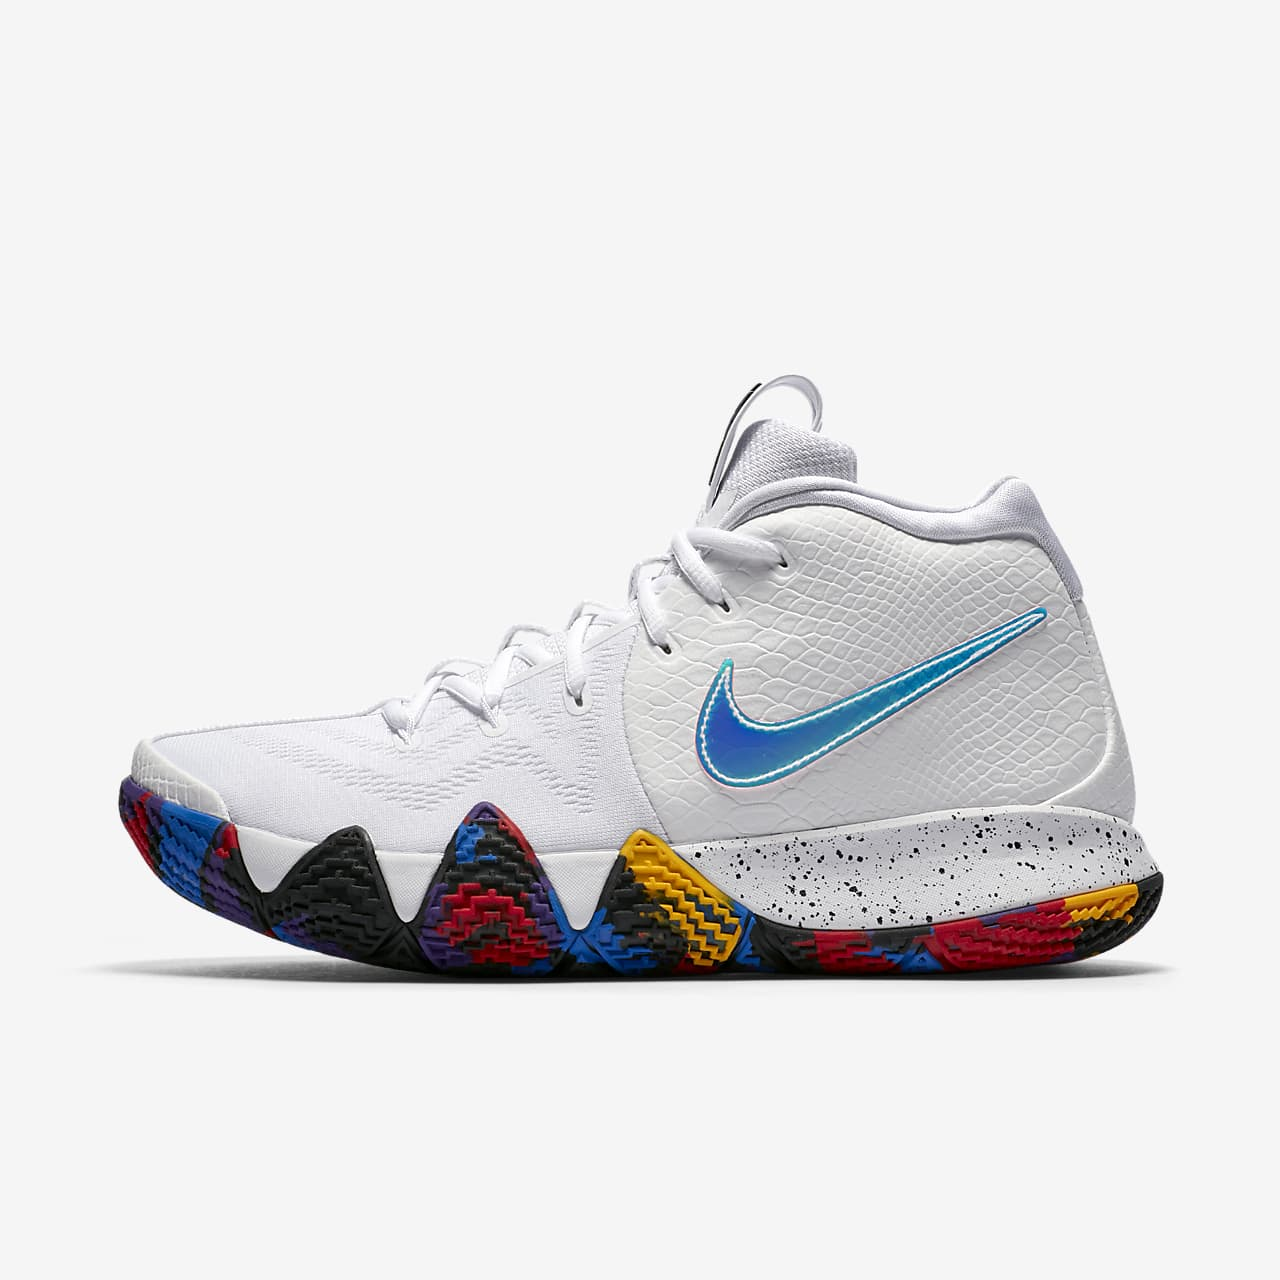 """Kyrie 4 """"The Moment"""" 籃球鞋"""